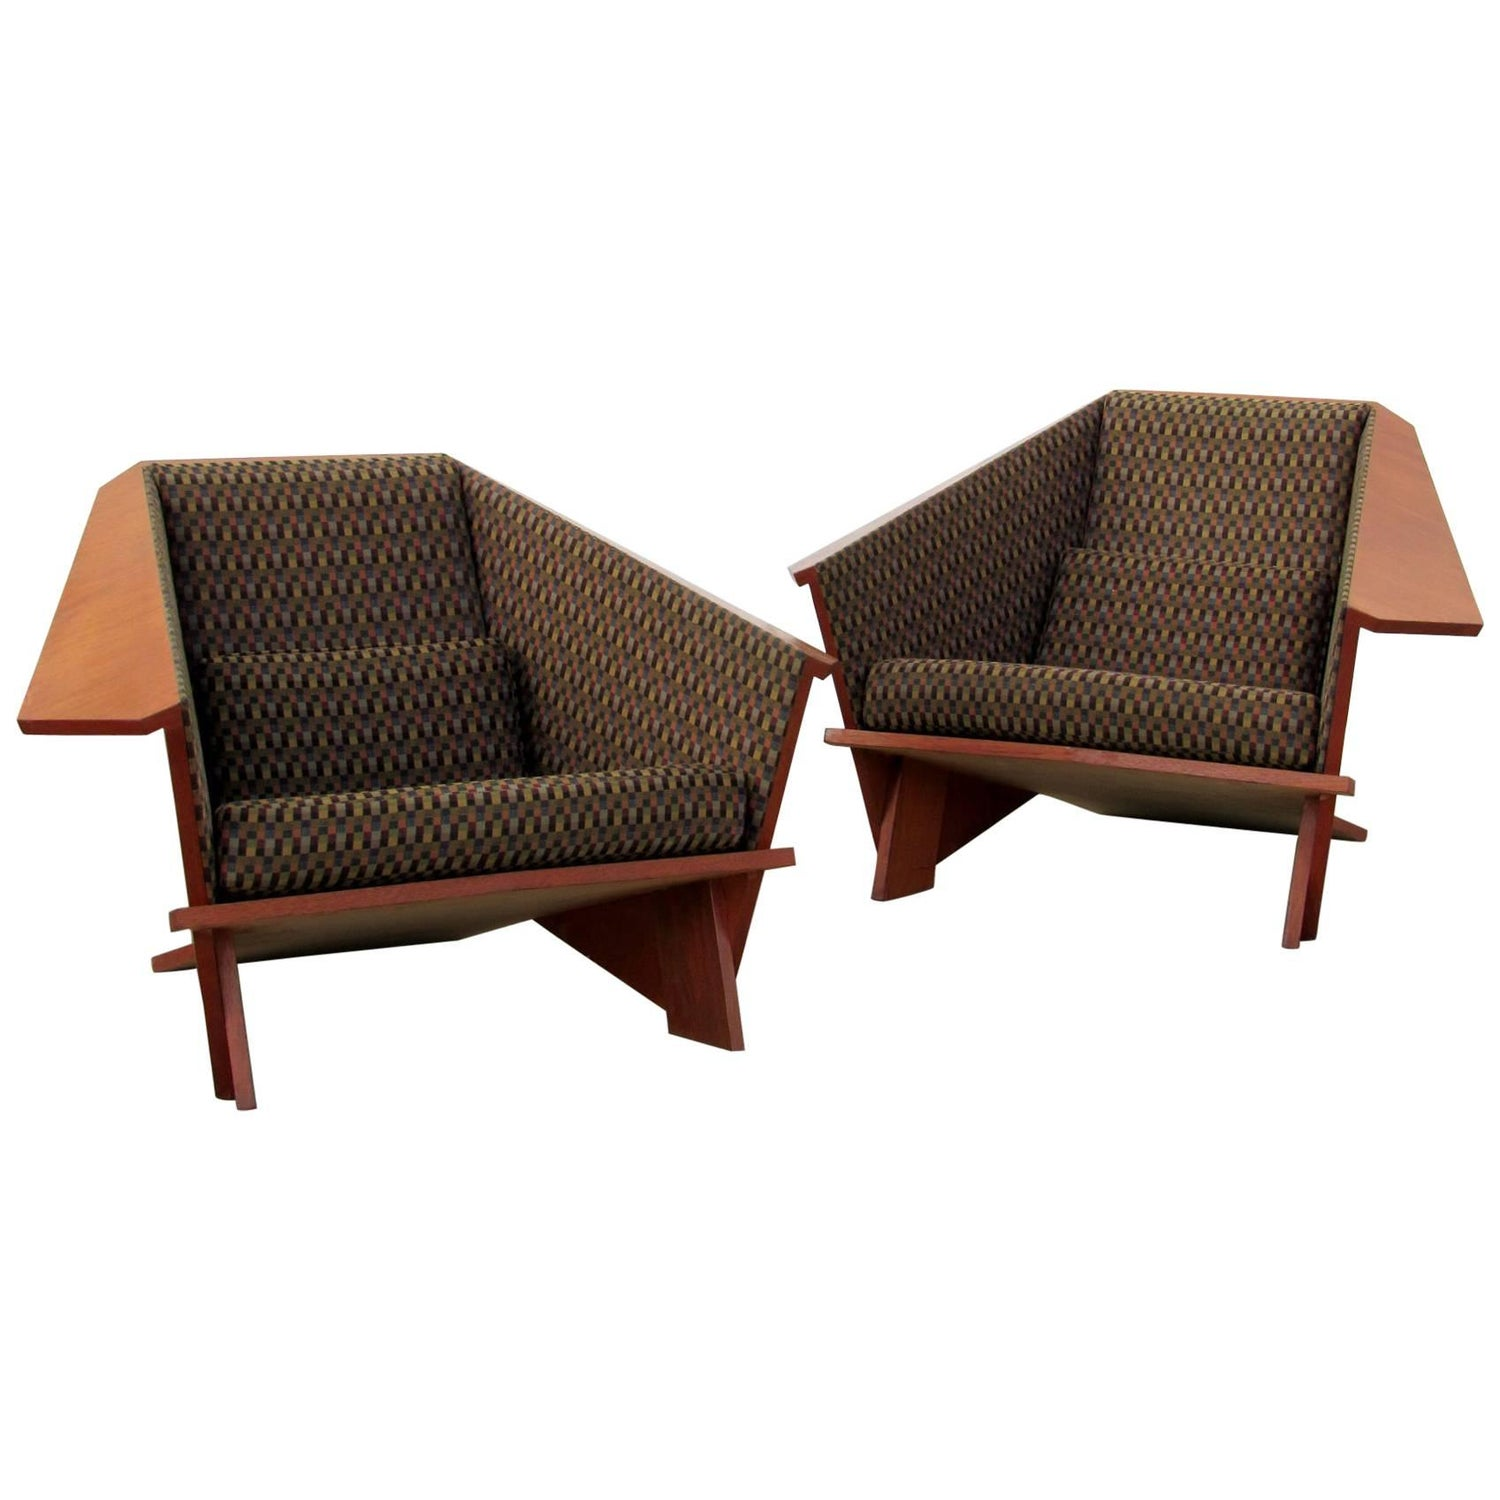 Pair Of Origami Lounge Chairs Manner Frank Lloyd Wright 1980s